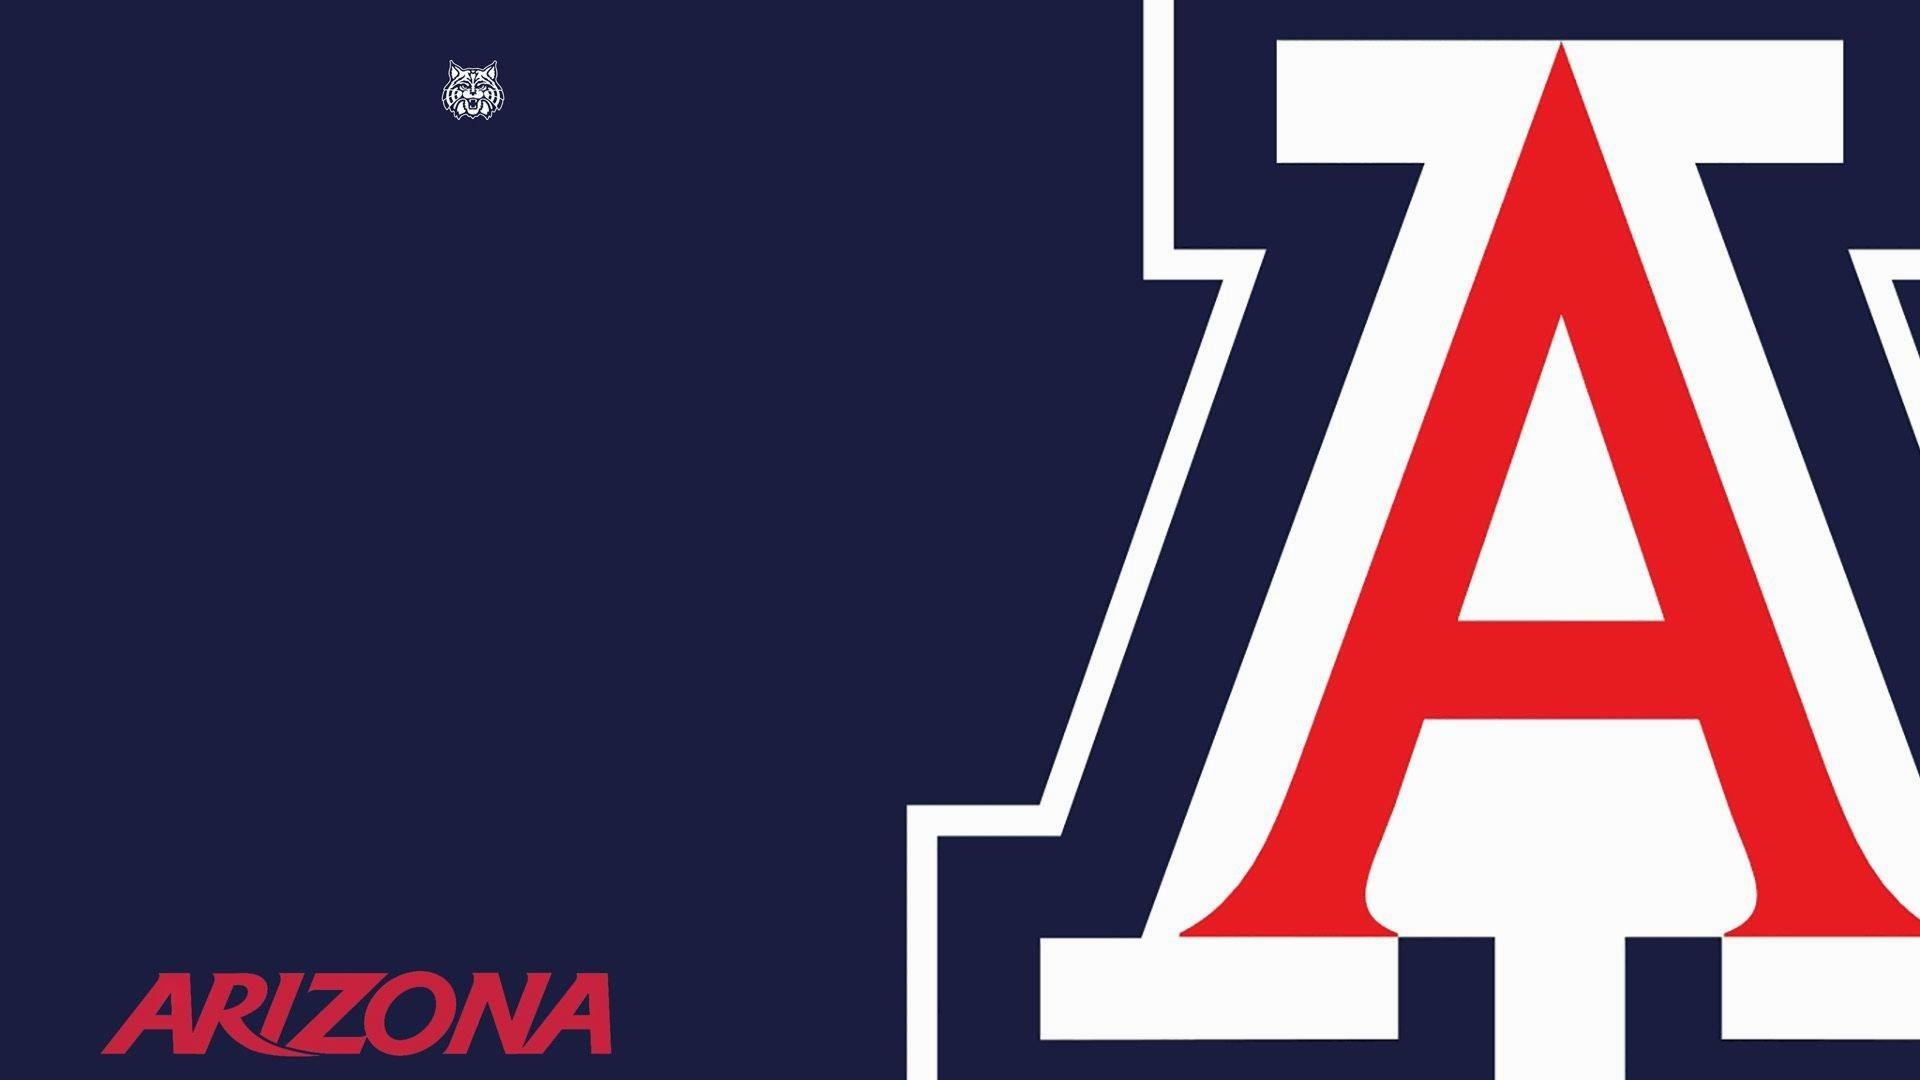 university of arizona wallpaper 183��